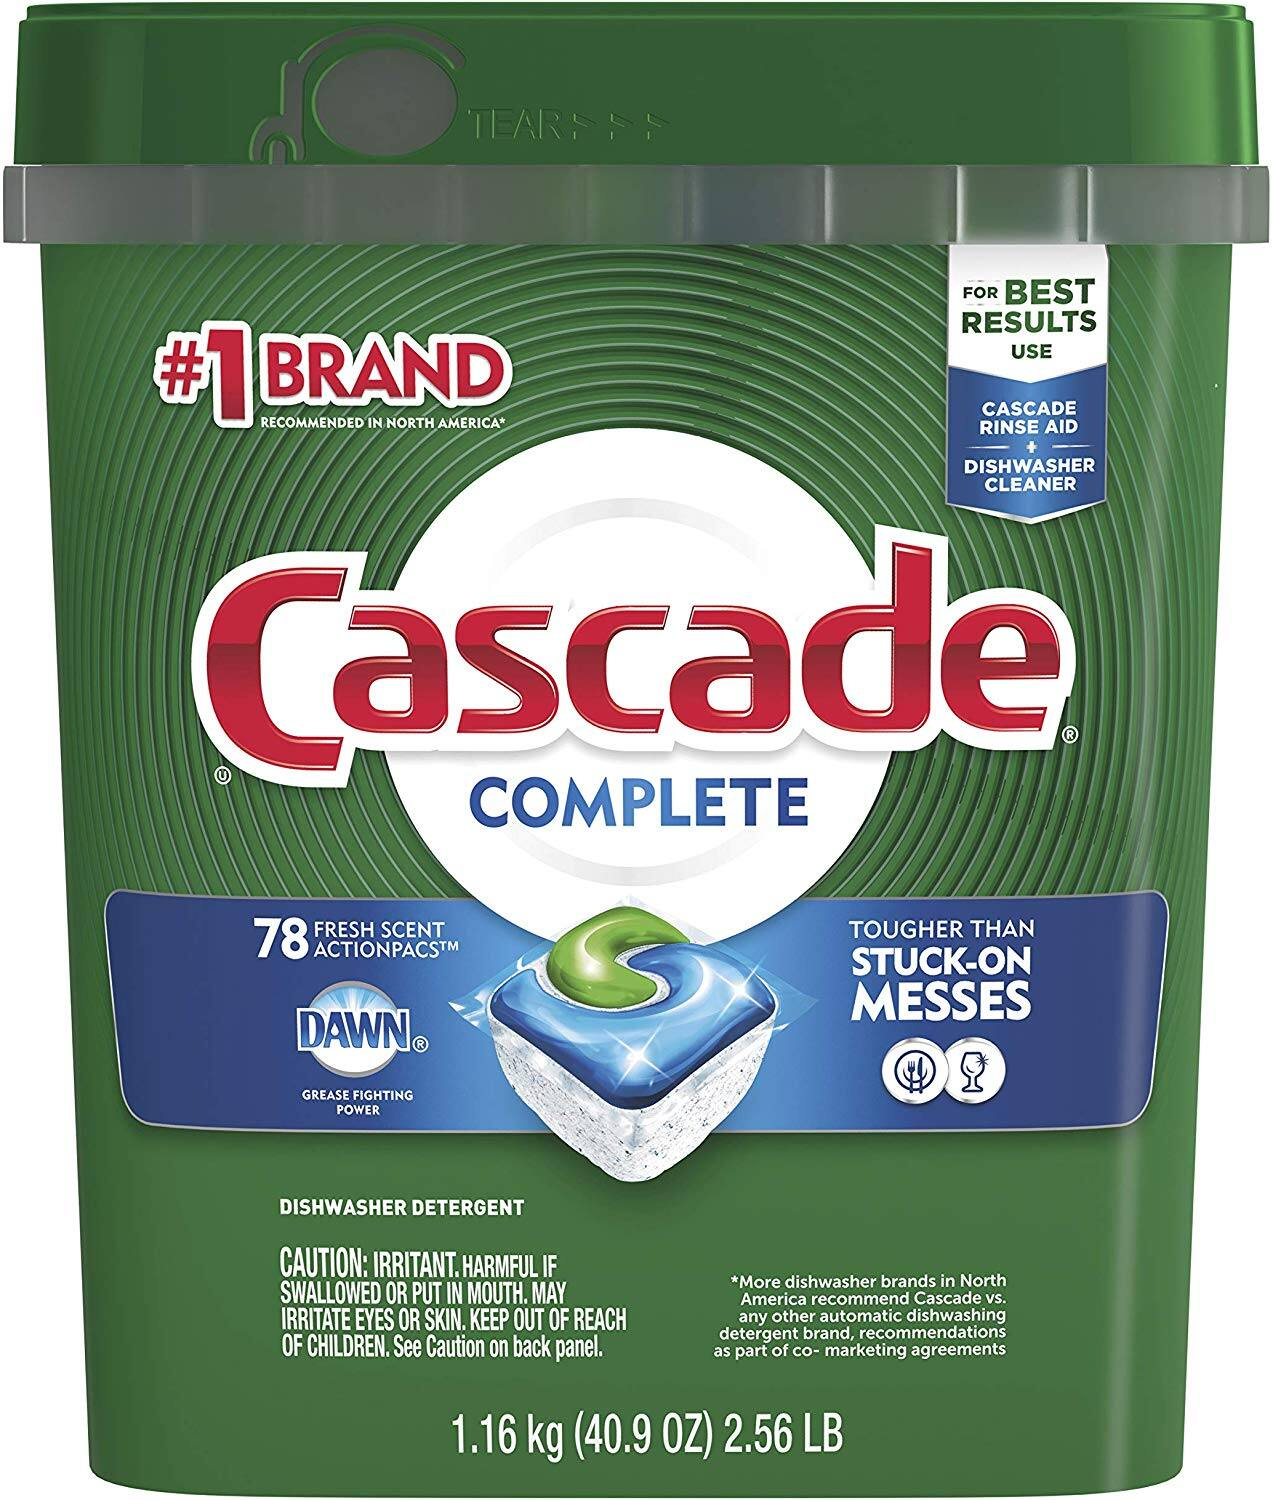 Cascade Complete Actionpacs Fresh Scented Dishwasher Detergent $9.52